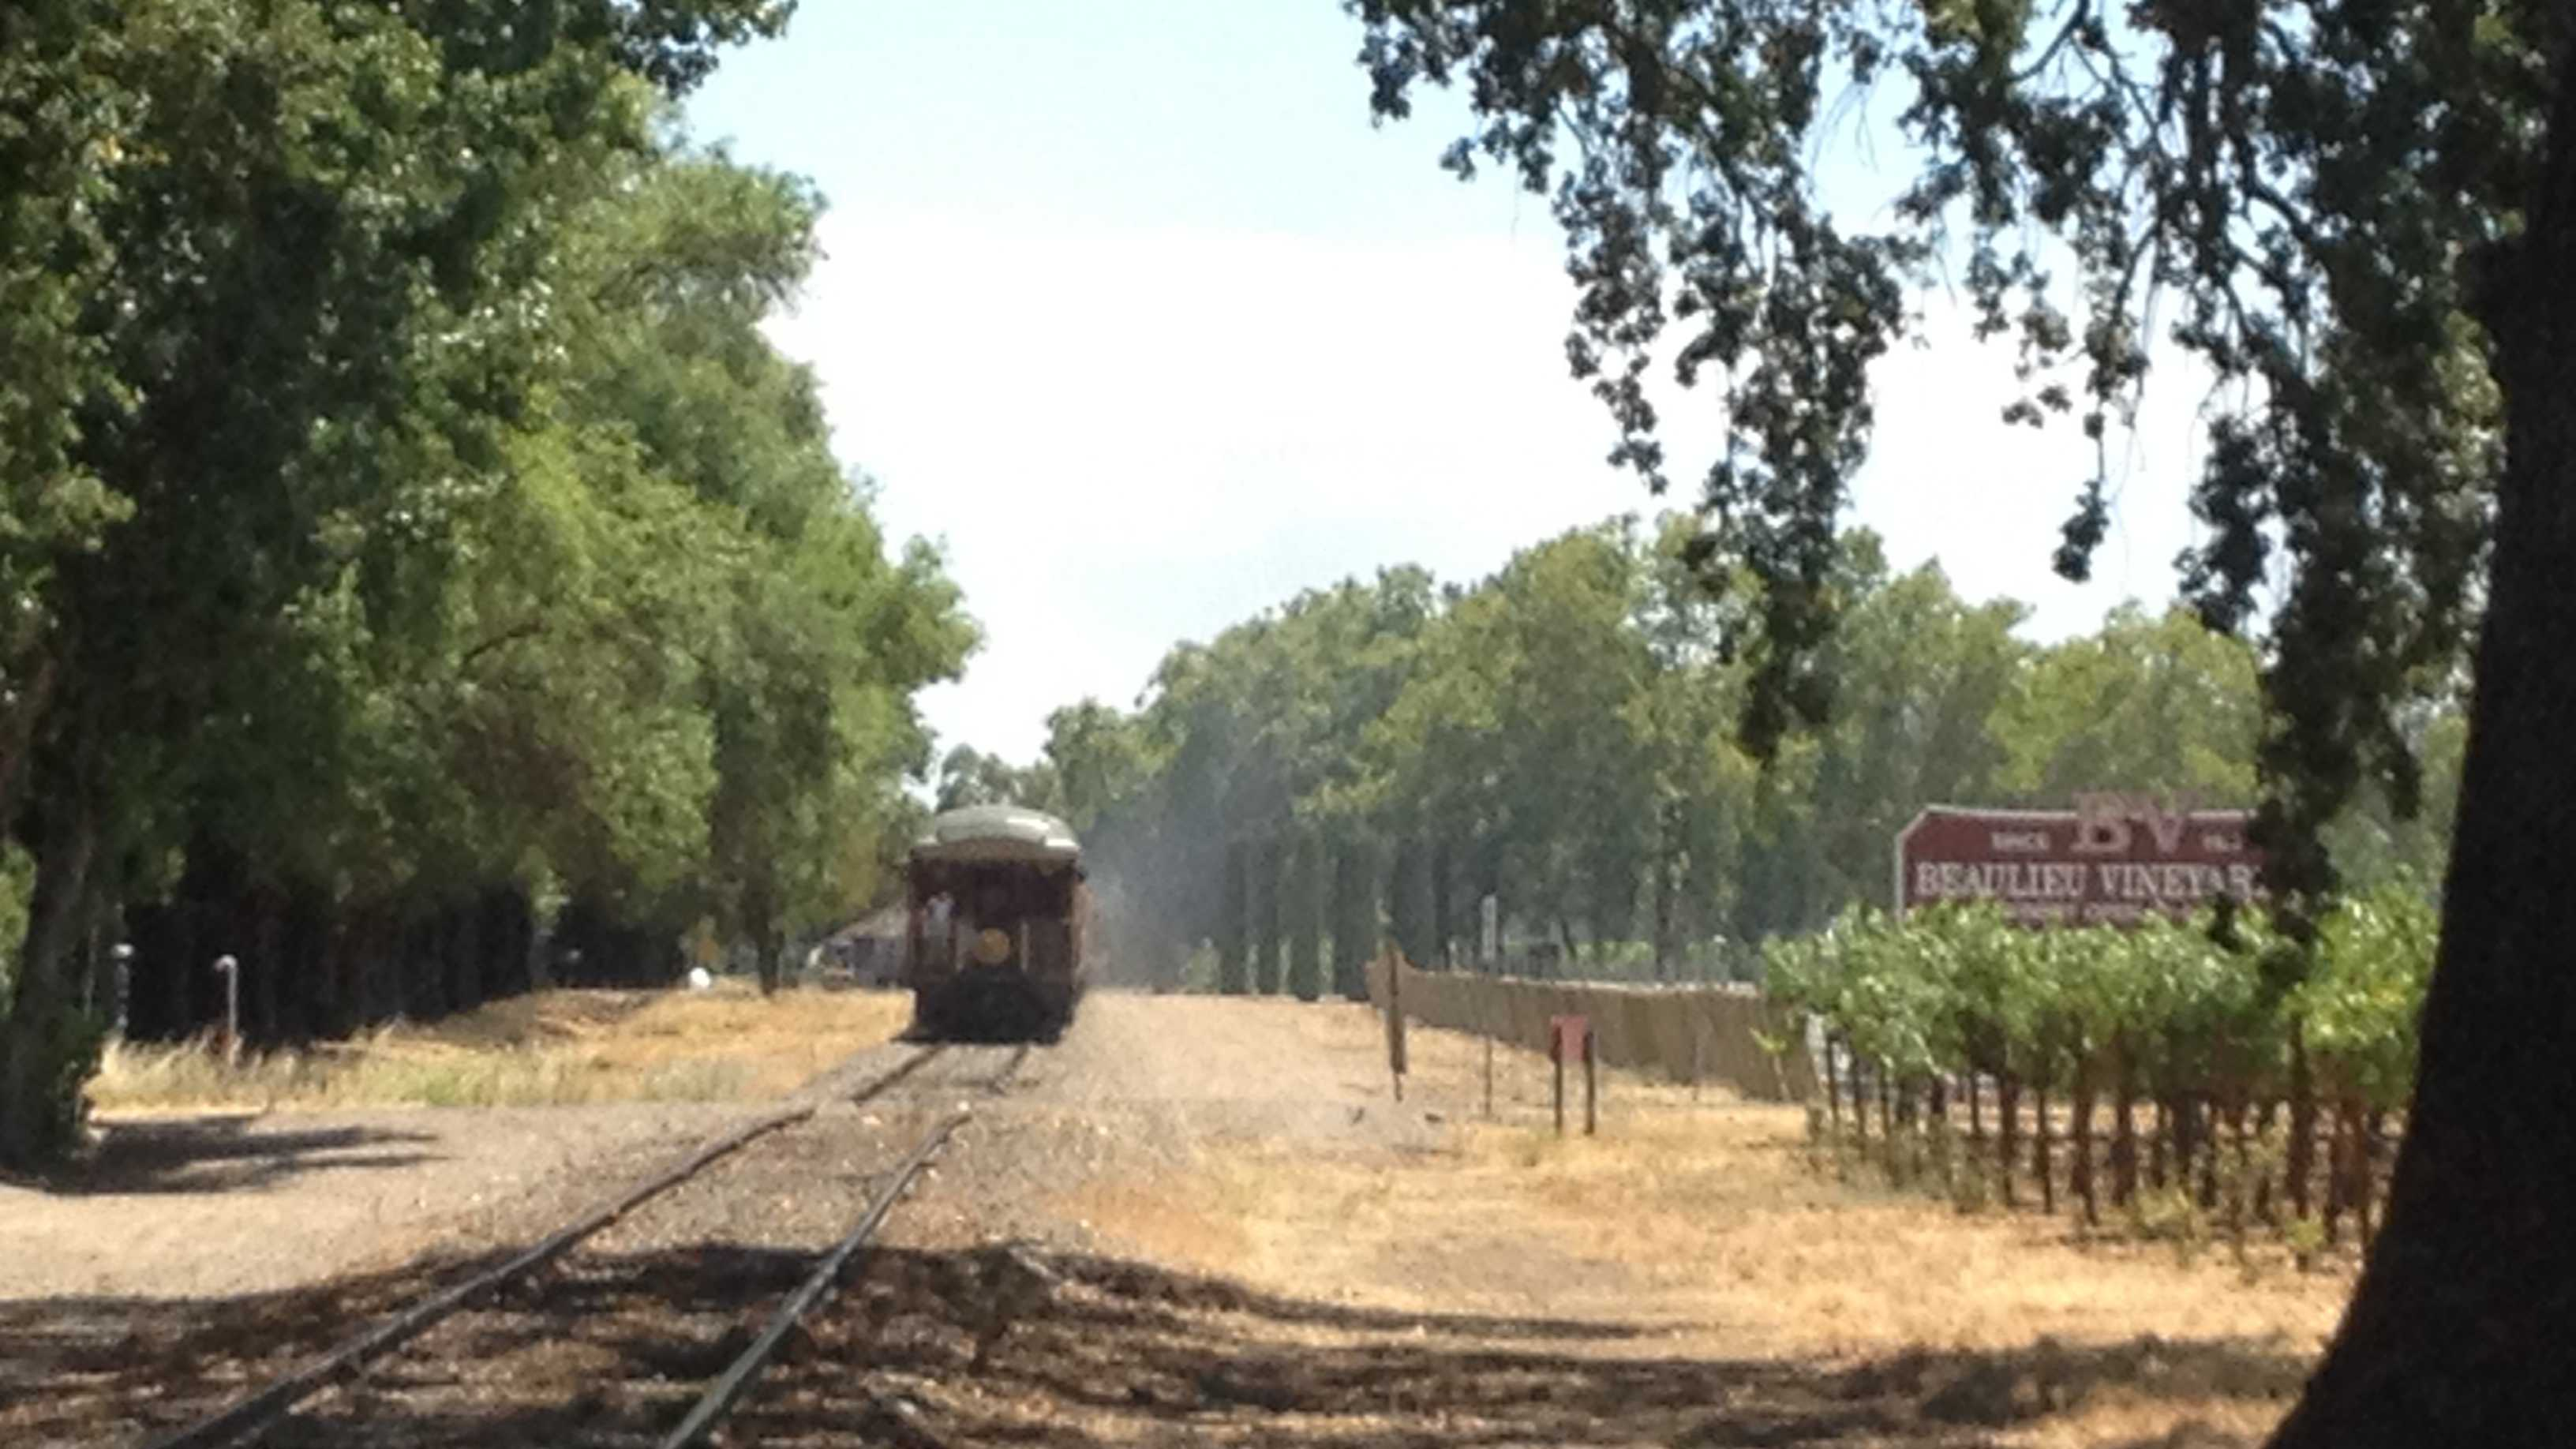 After dropping off passengers, the Napa Valley Wine Train heads back to Napa, passing Beaulieu Vineyard.